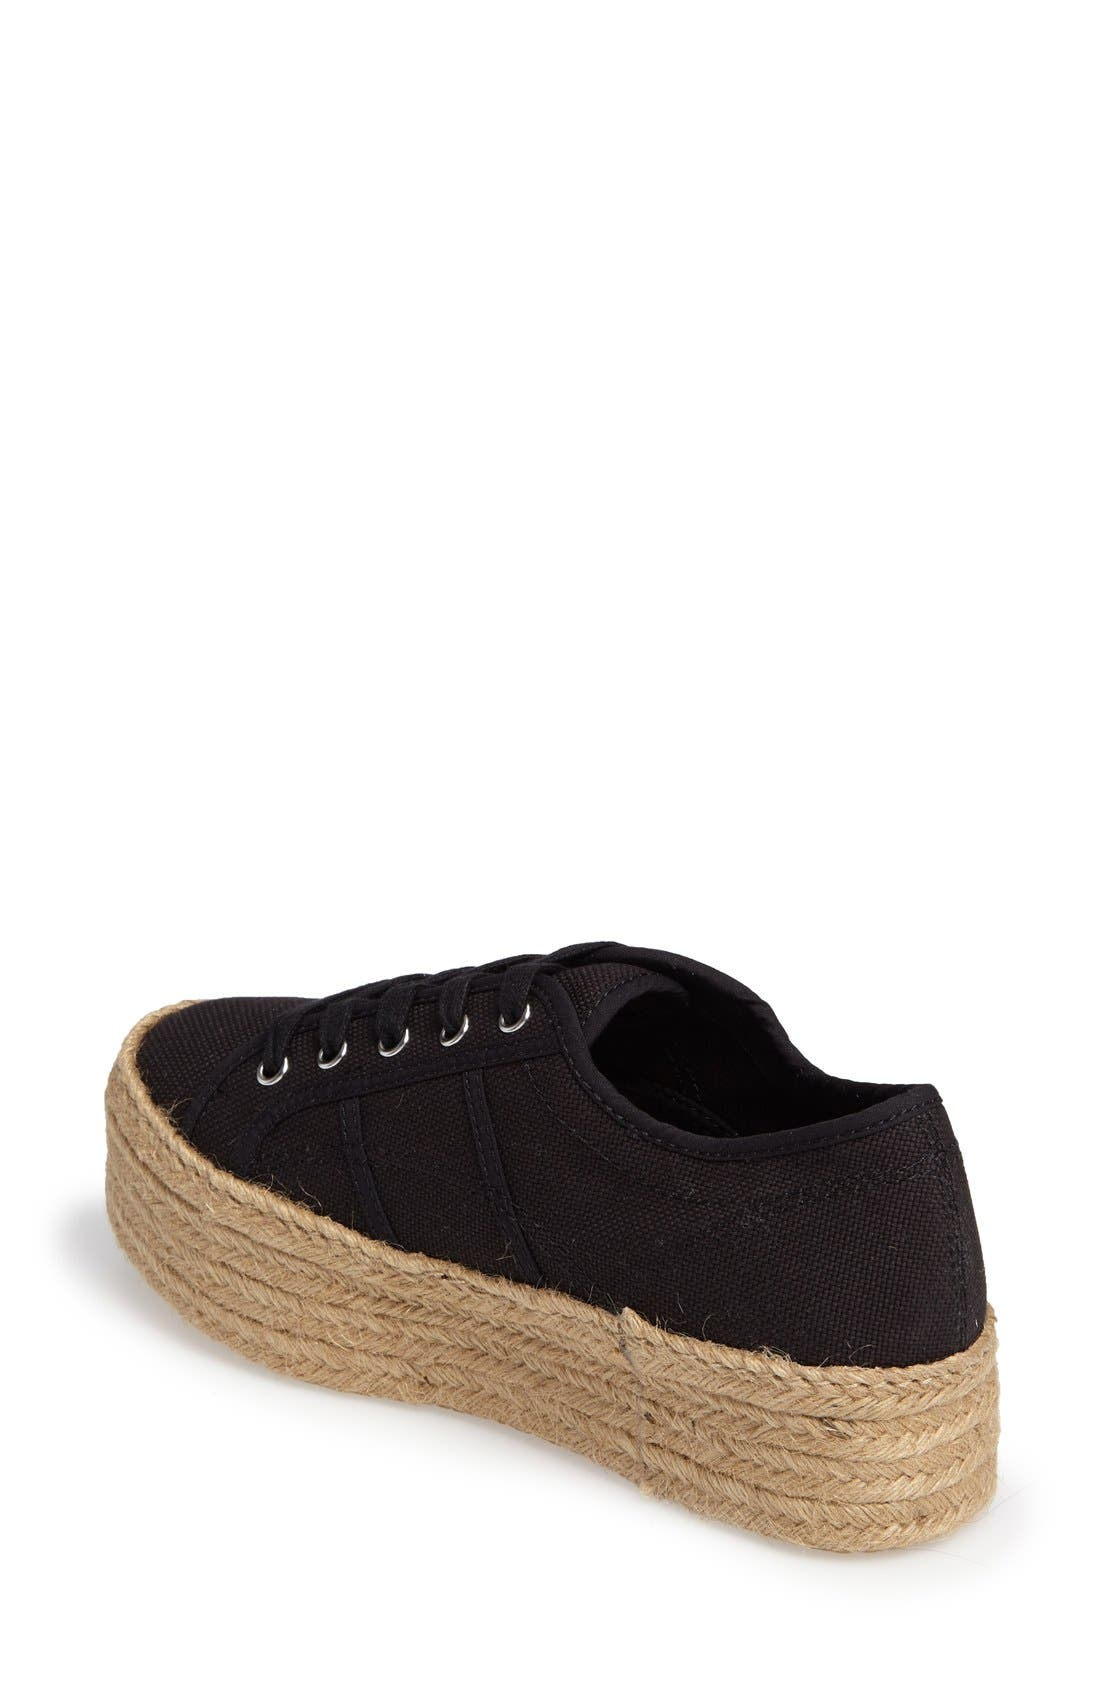 Hampton Platform Sneaker,                             Alternate thumbnail 6, color,                             007